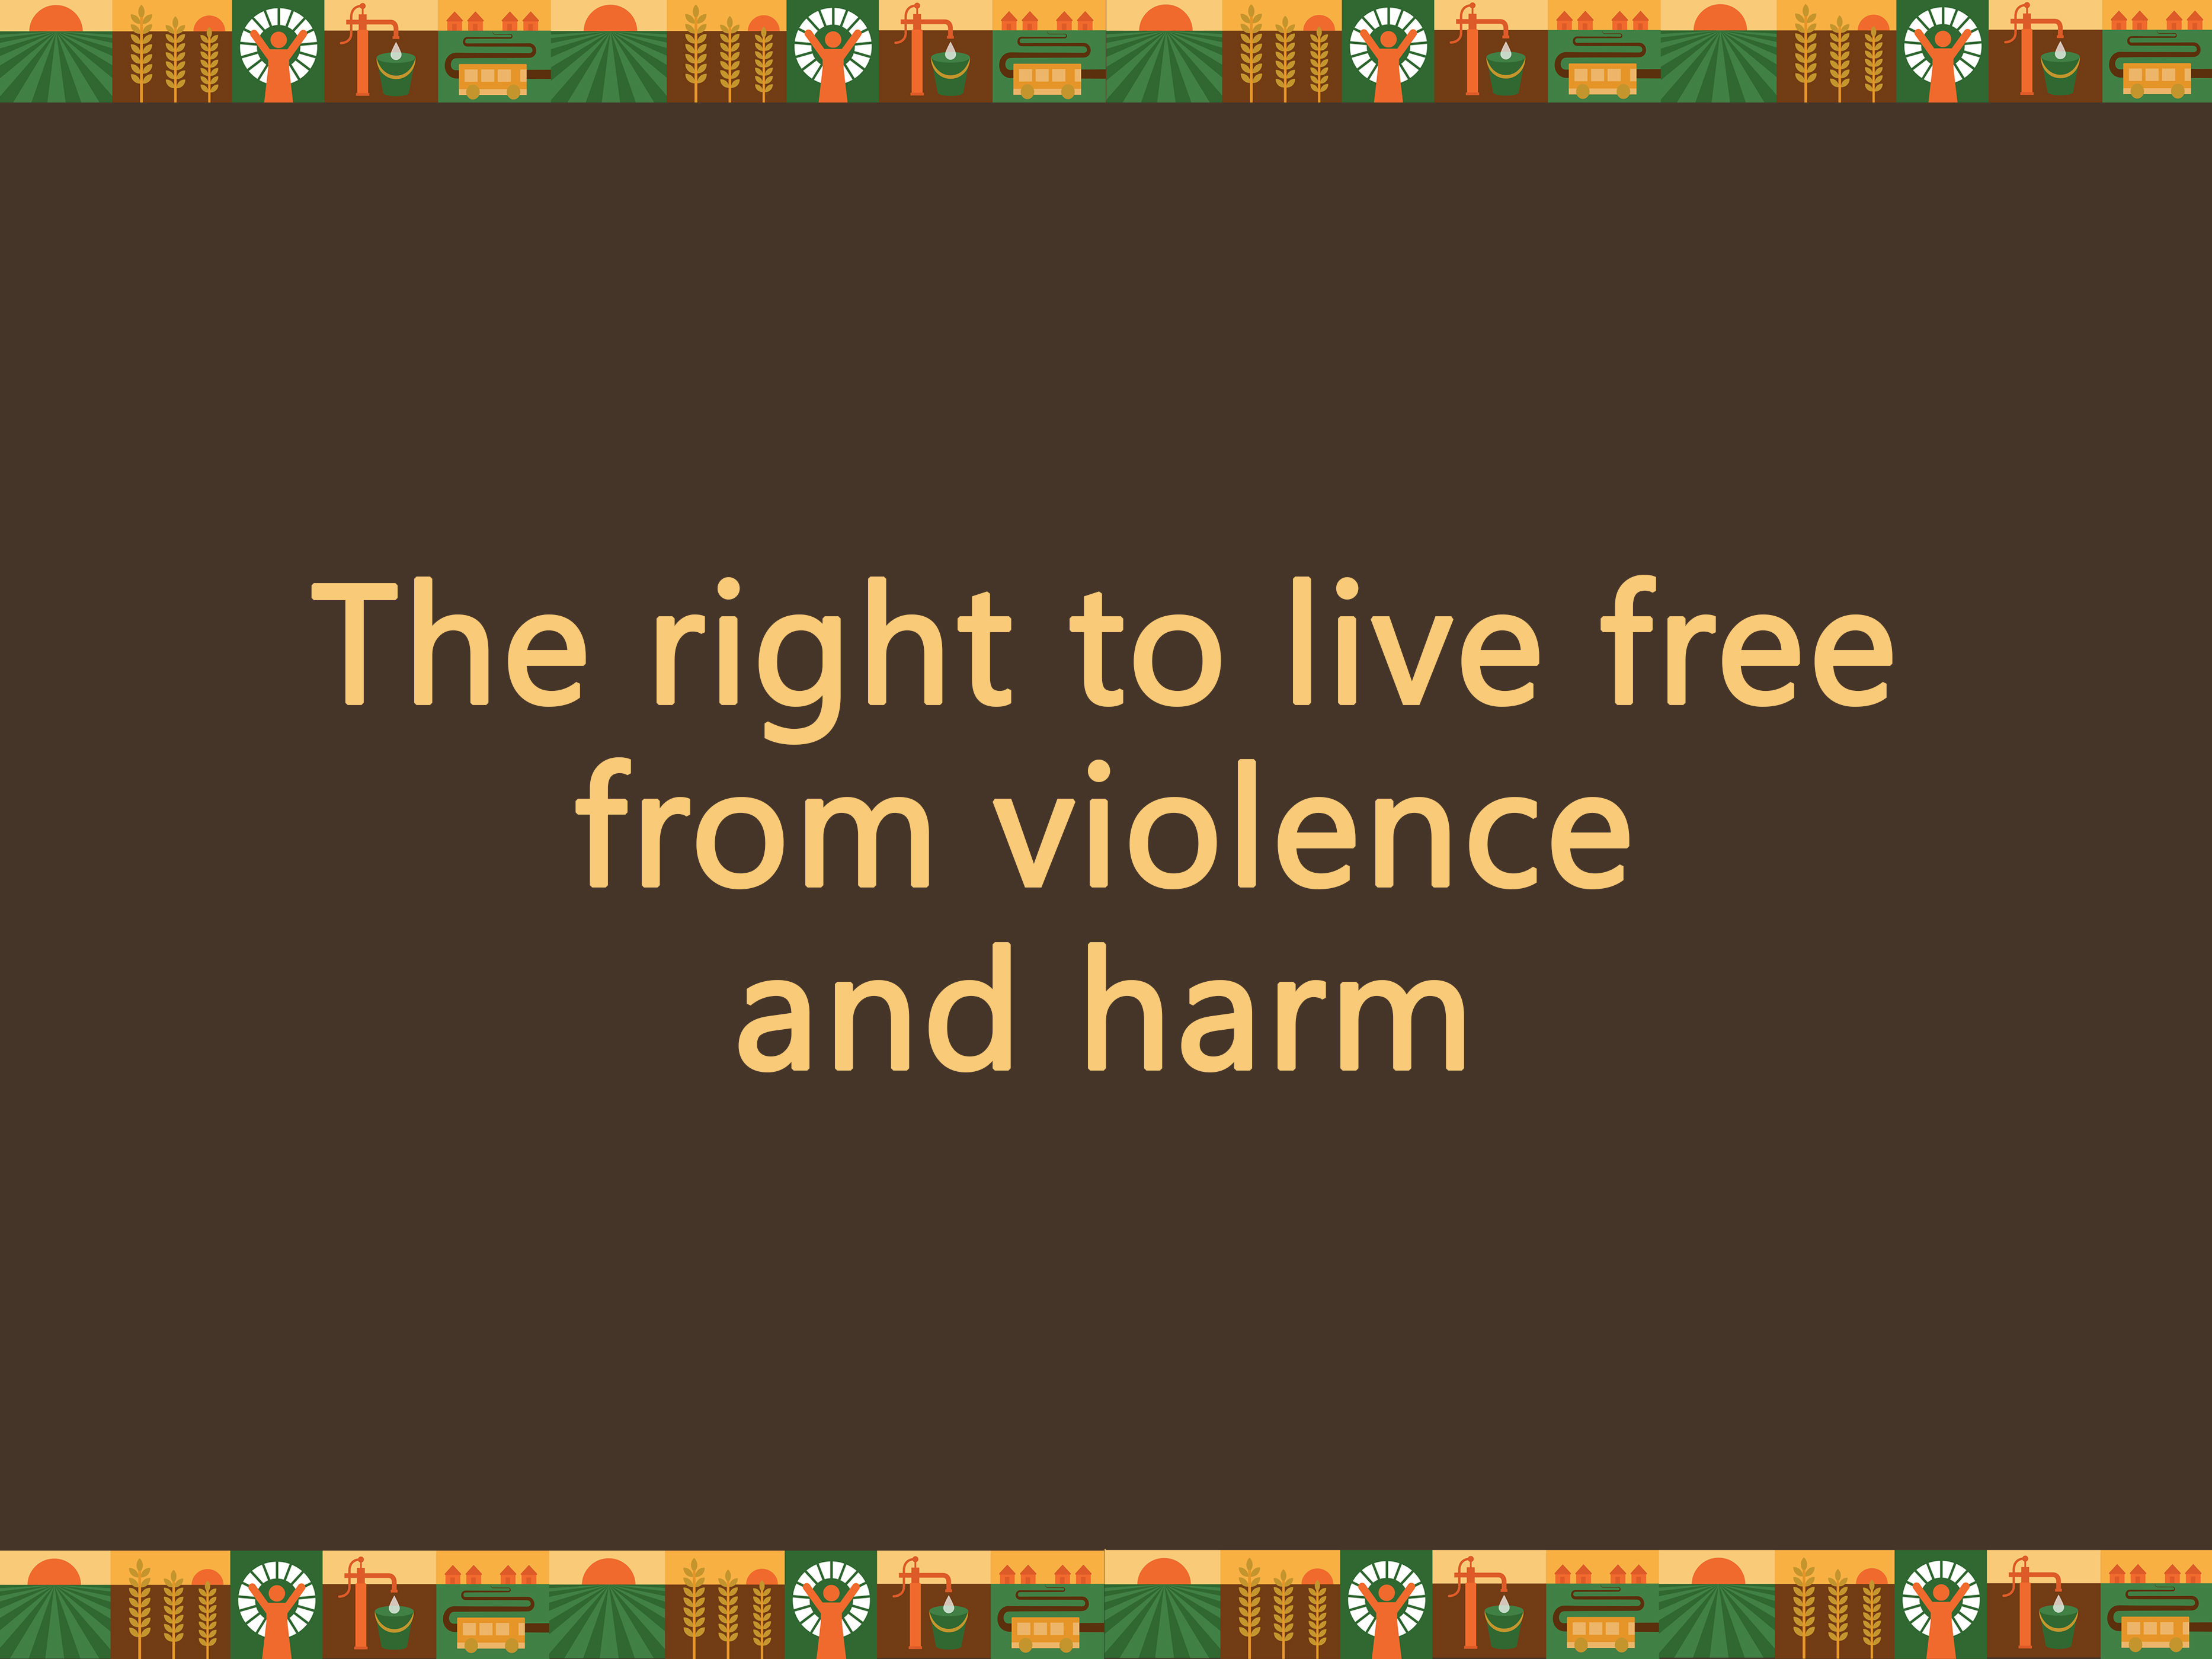 The right to live free from violence and harm